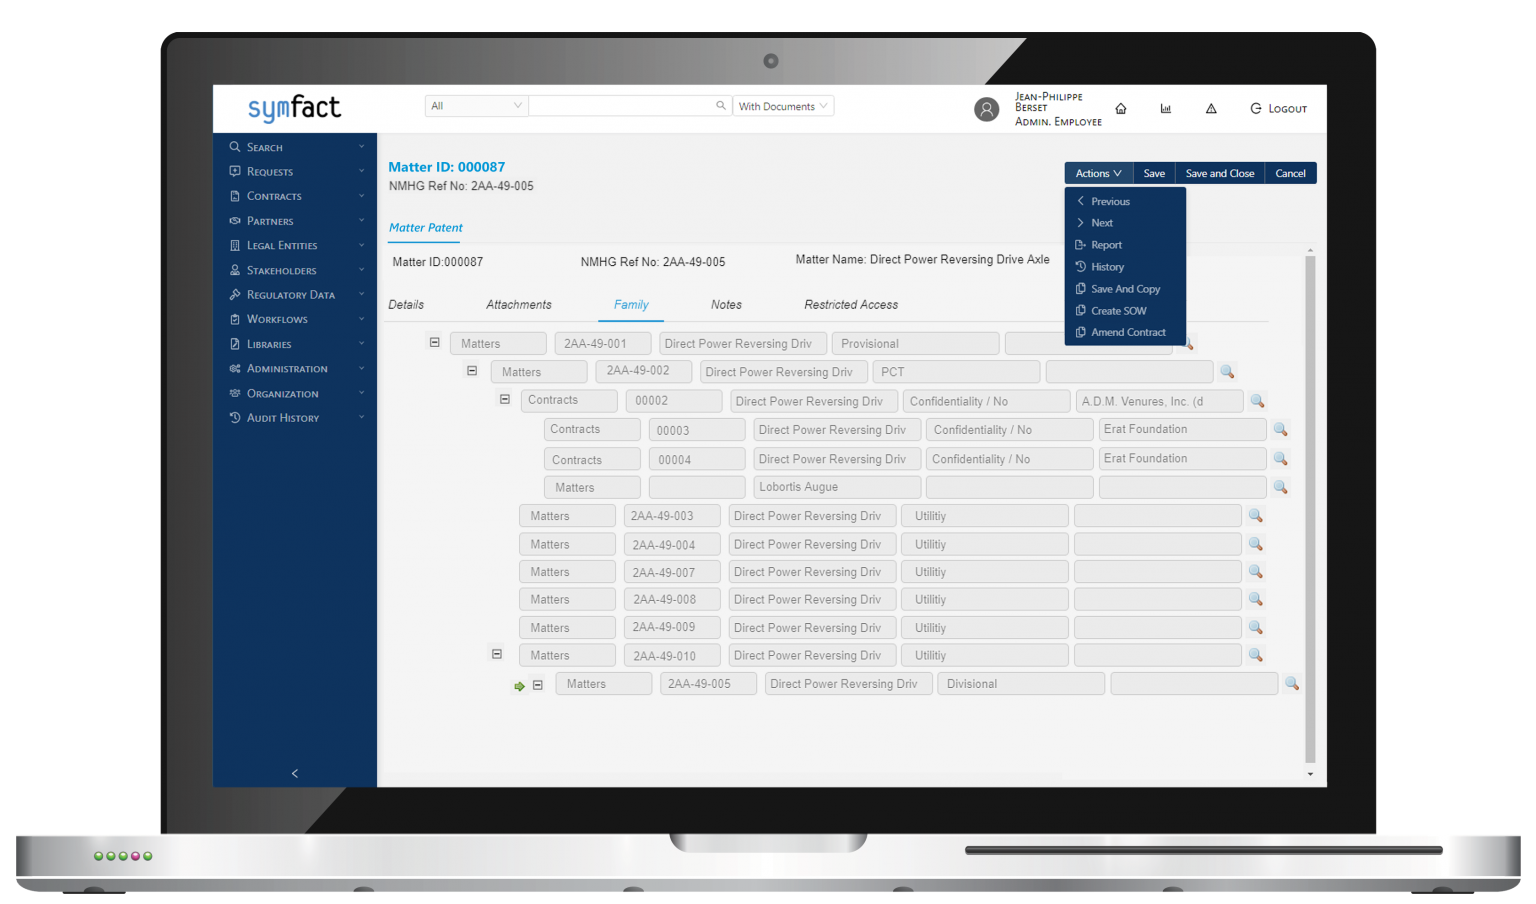 Symfact Outsourcing Value Management Software